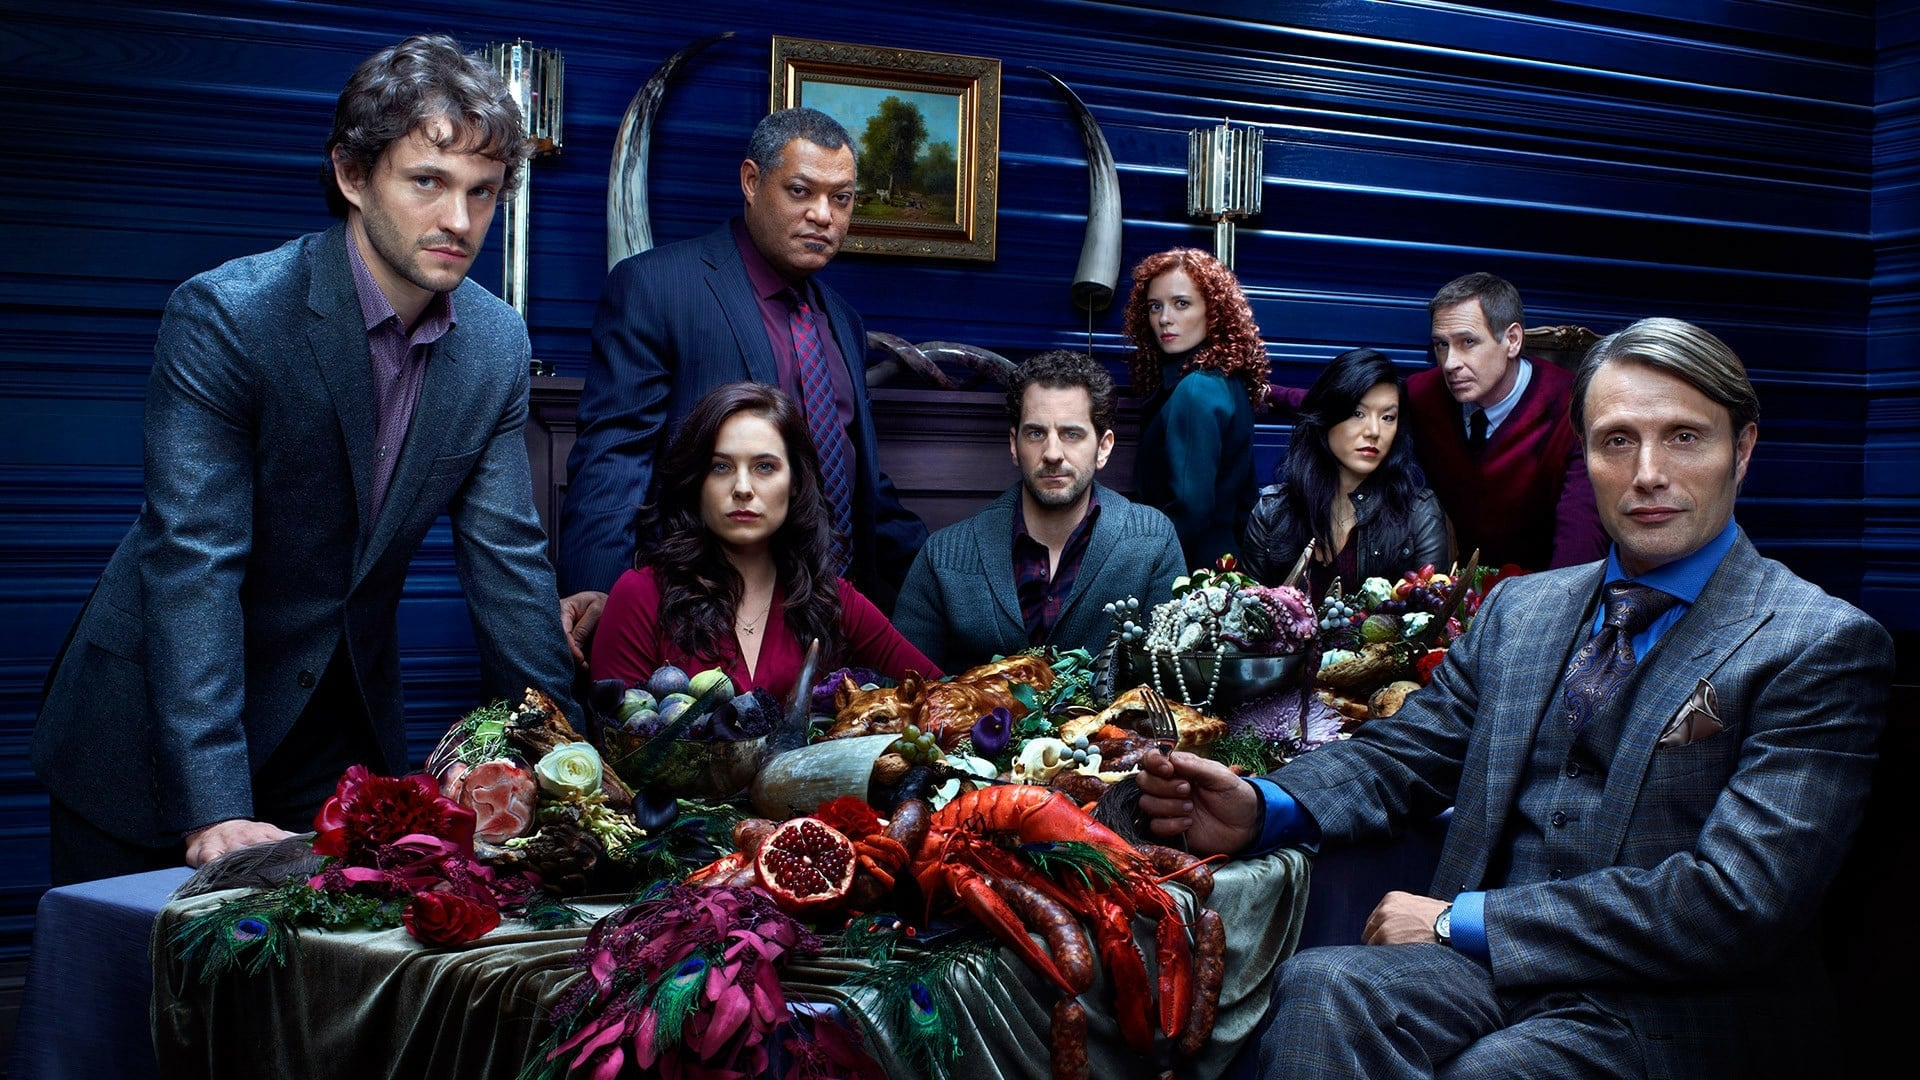 Hannibal renewed for season 2